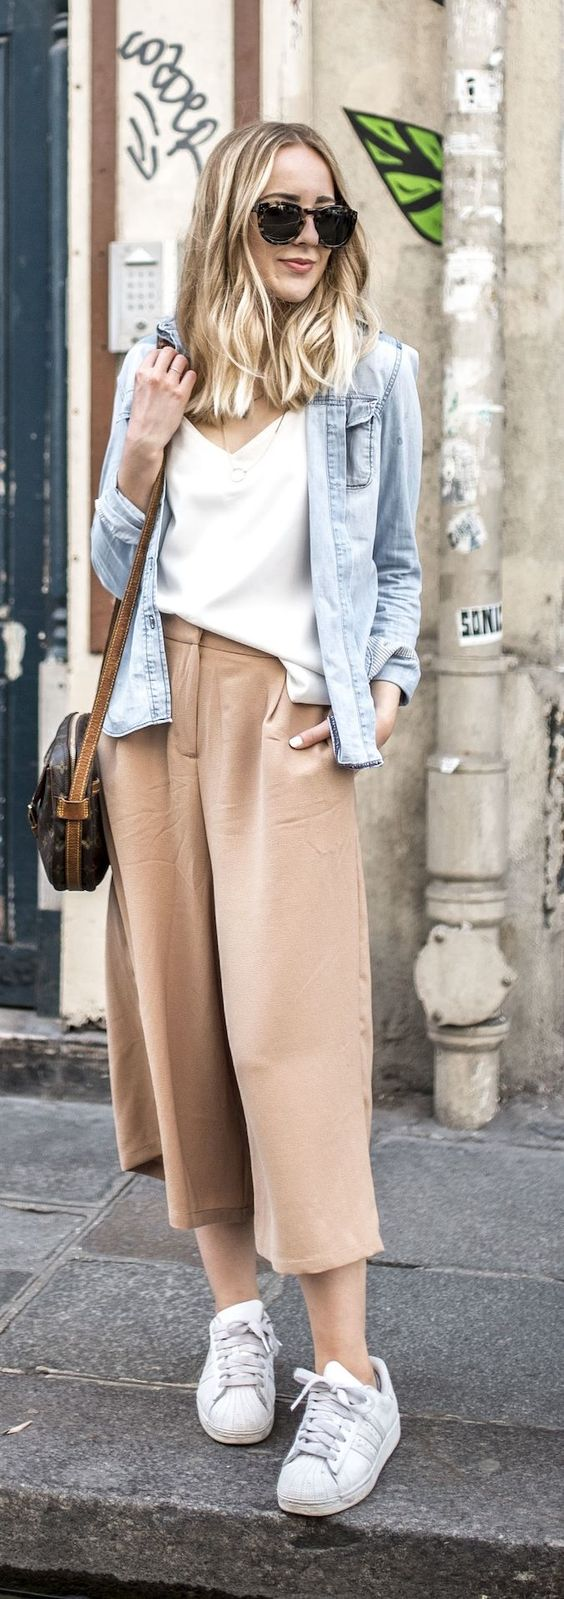 Blush Culottes Casual Style by Tiphaine's Diary